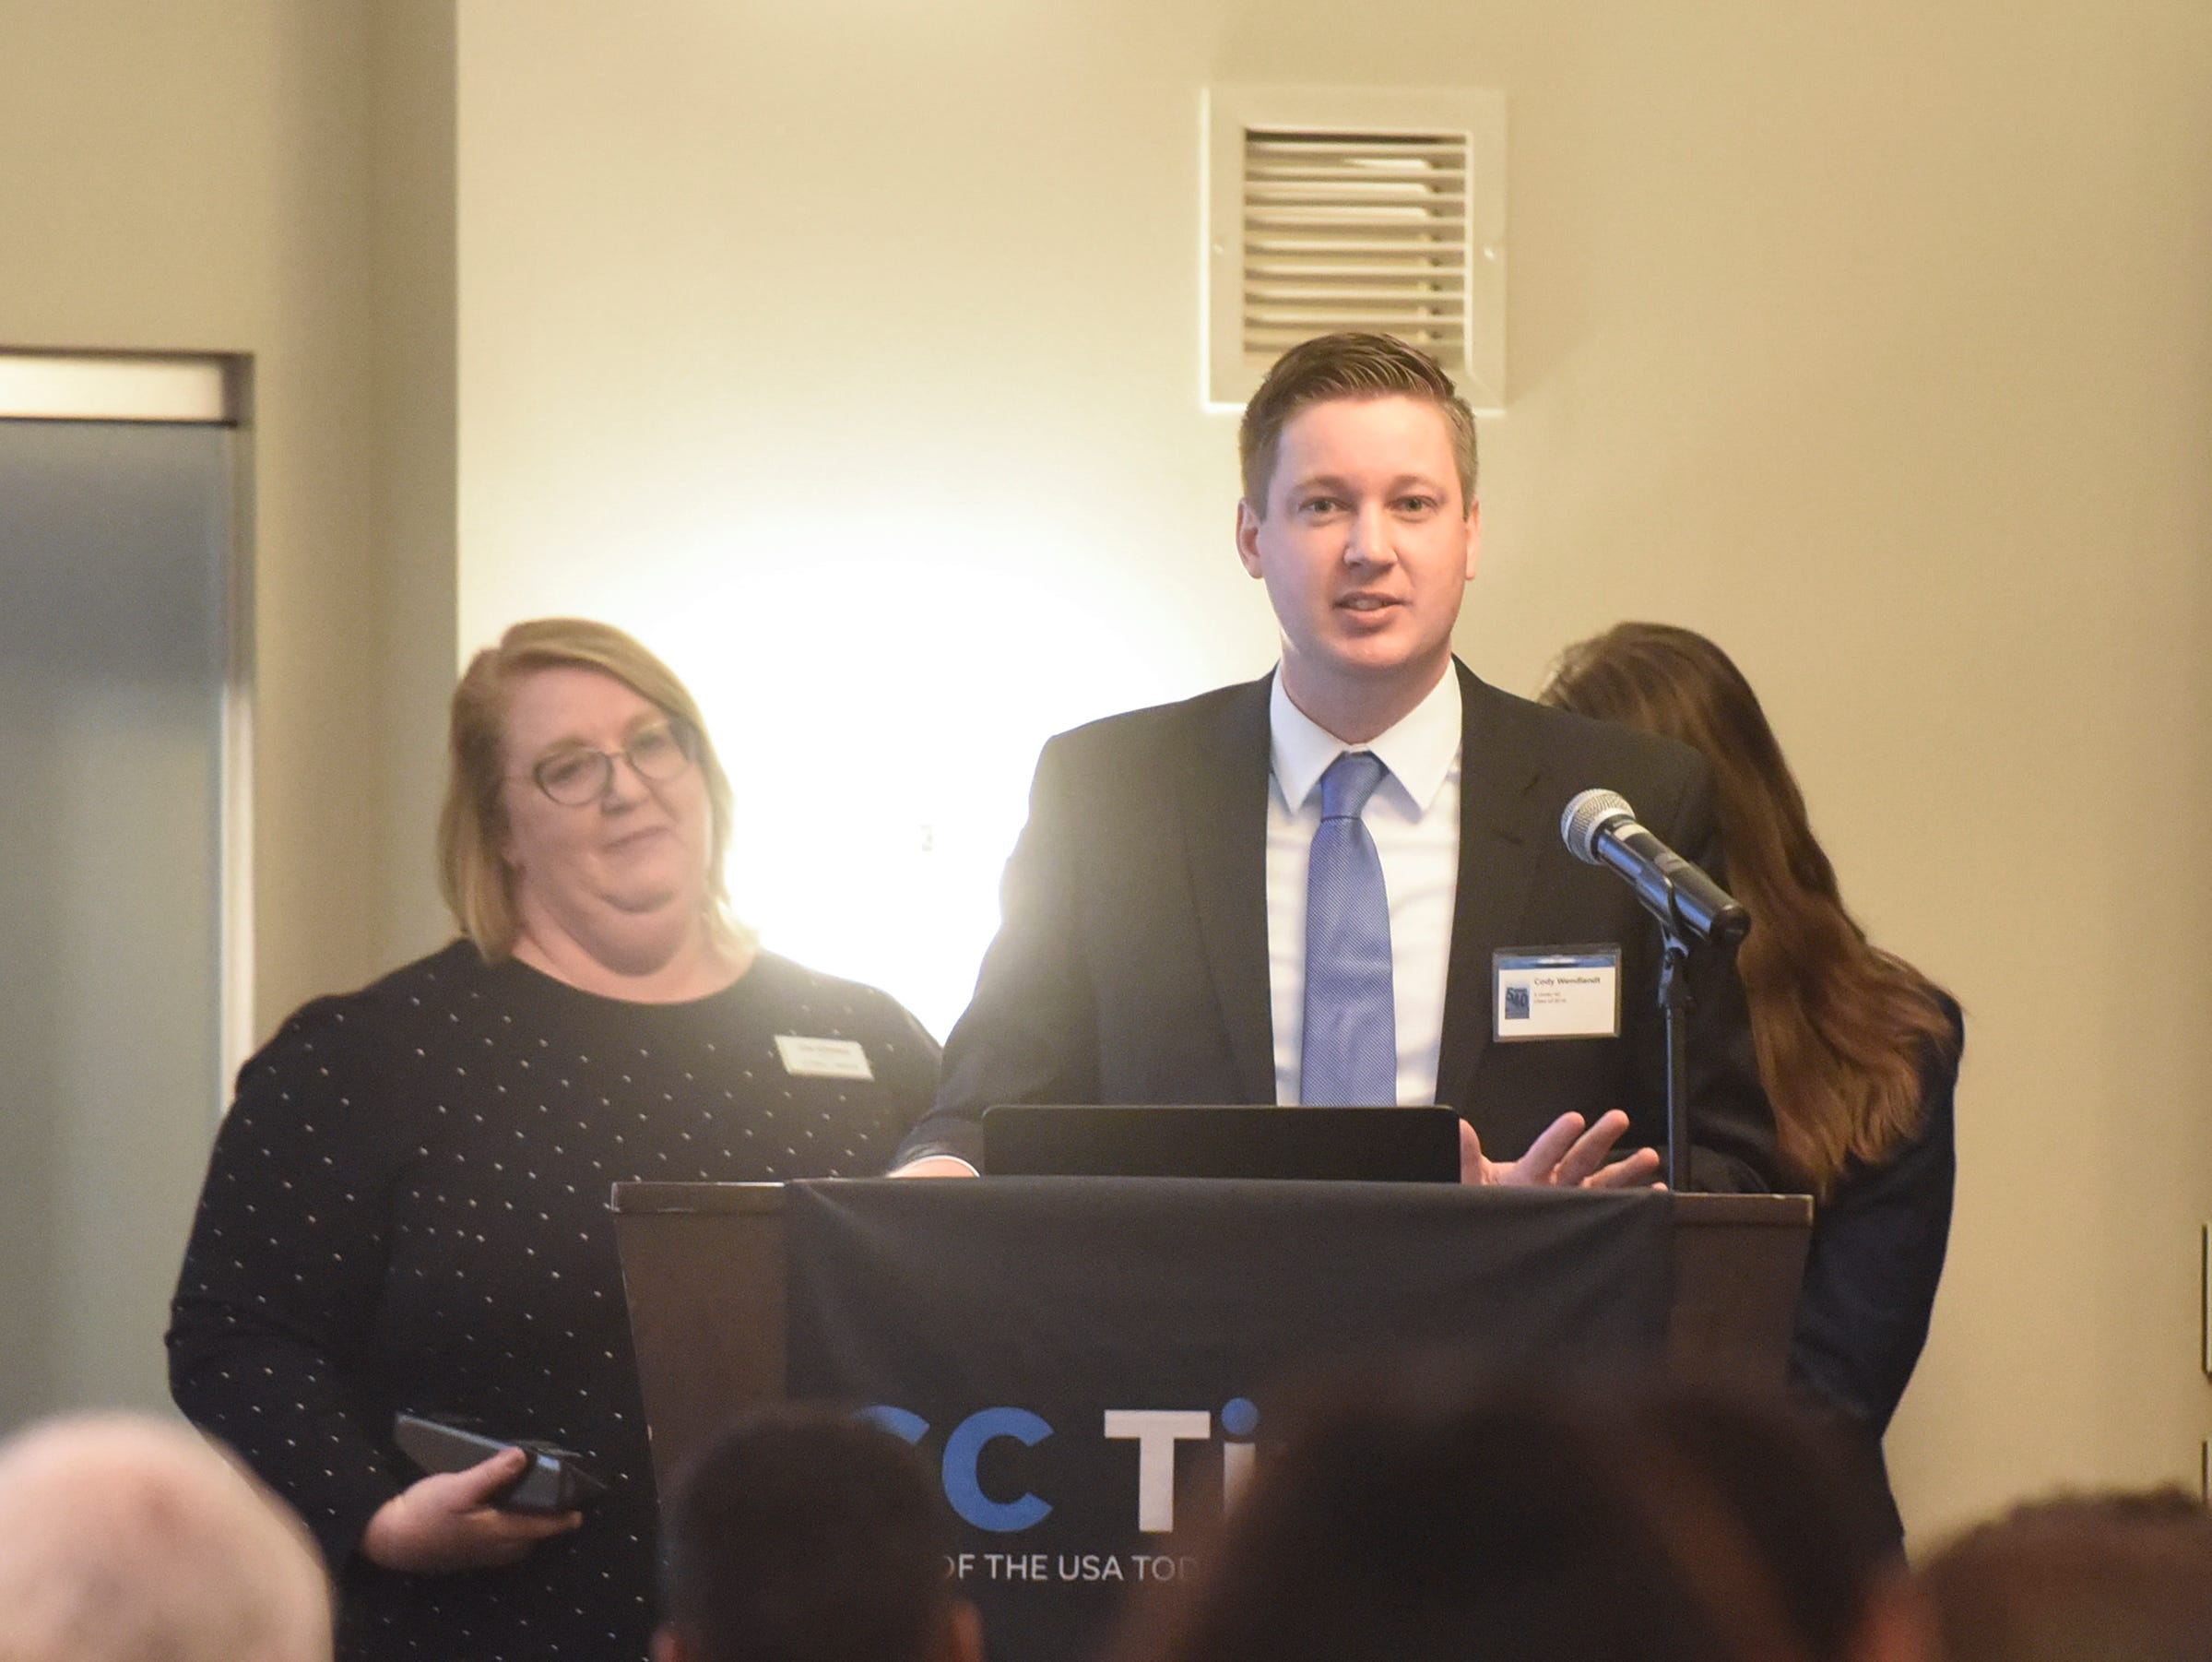 Cody Wendlandt speaks during the 5 Under 40 Awards program Tuesday, Jan. 15, in St. Cloud.